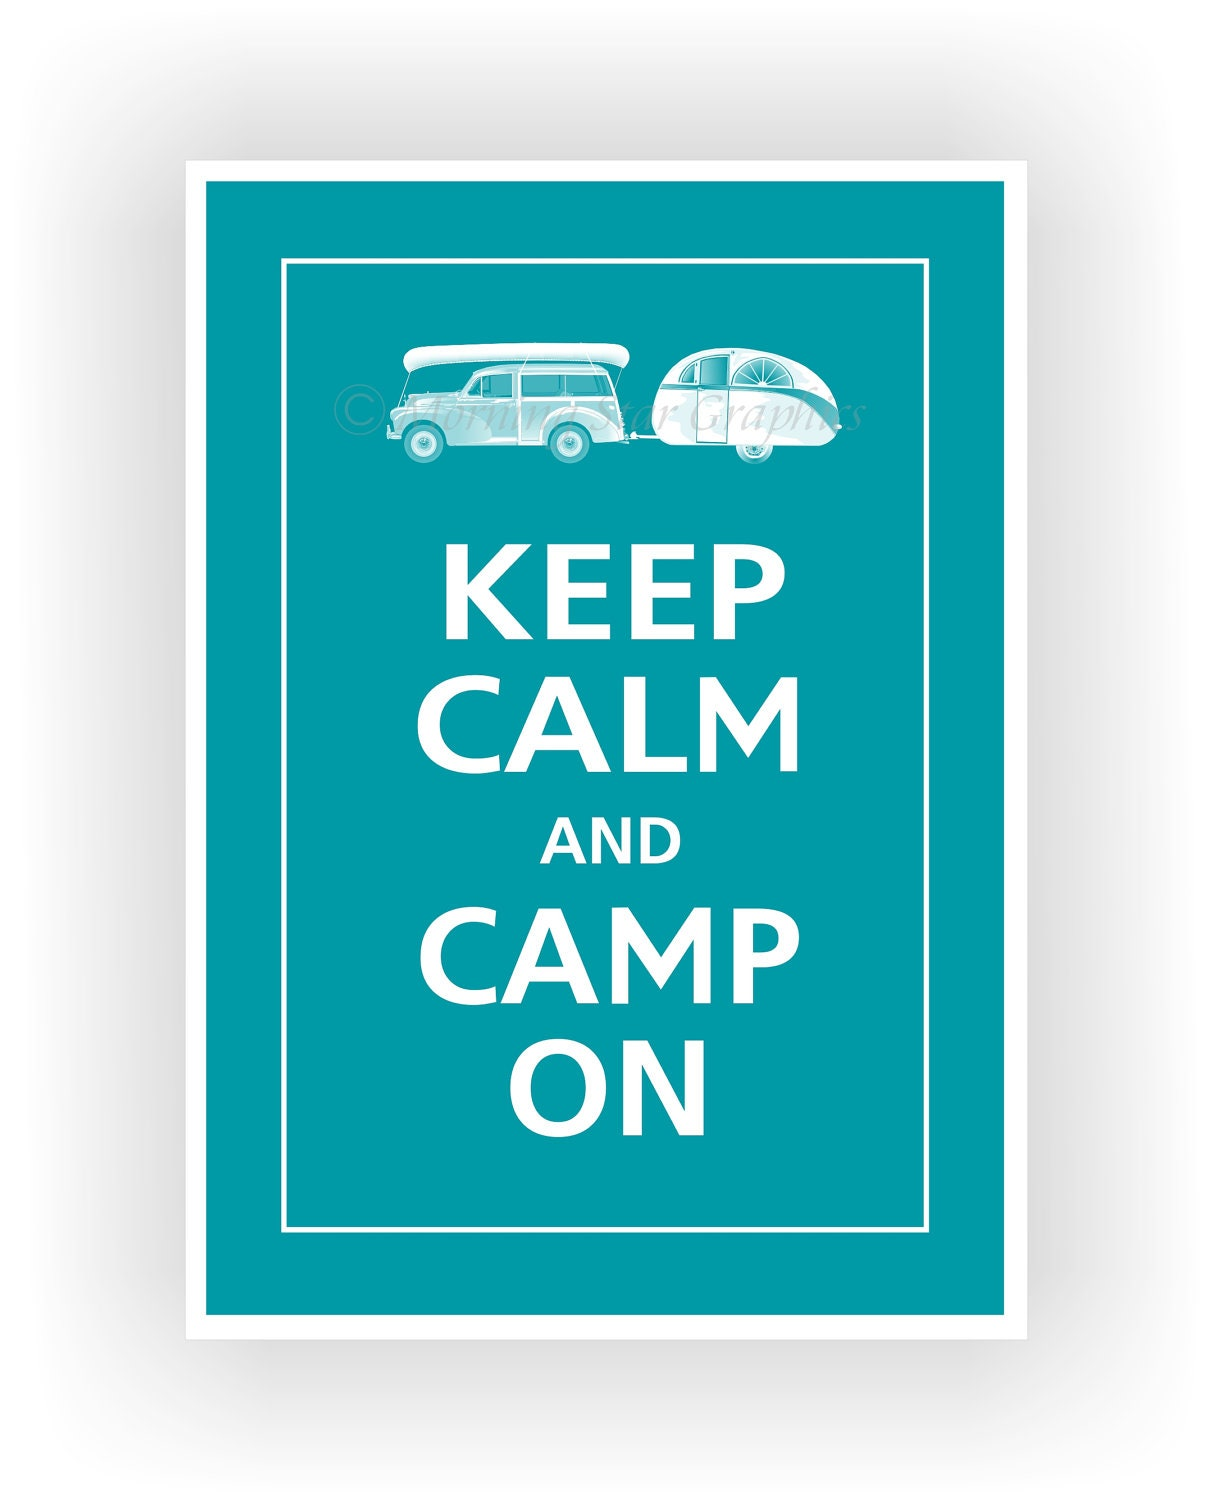 Keep Calm and CAMP ON Print 5x7 (Surf Blue featured--56 colors to choose from)